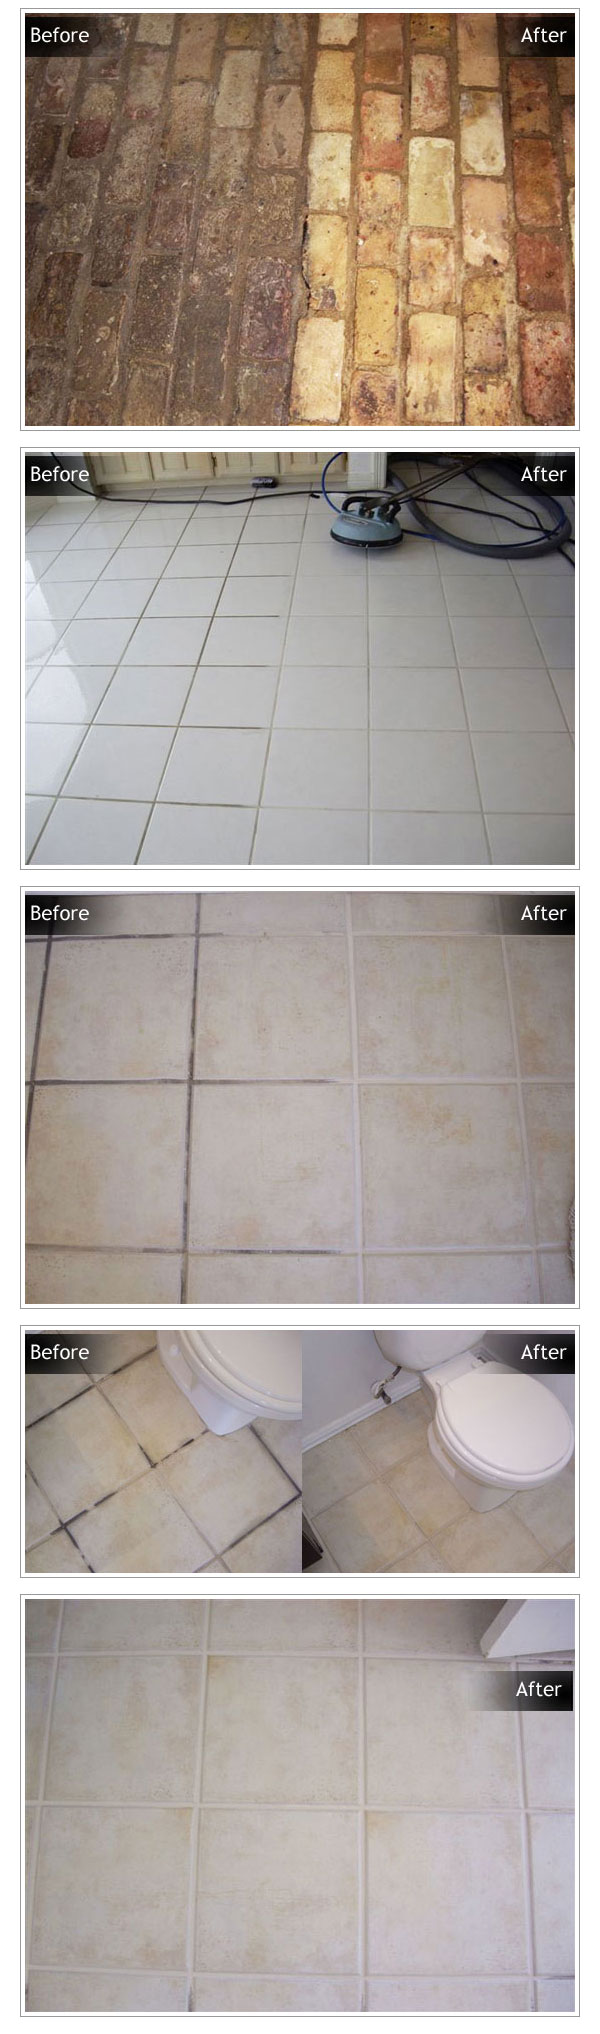 Tile & Grout Cleaning in Desoto TX